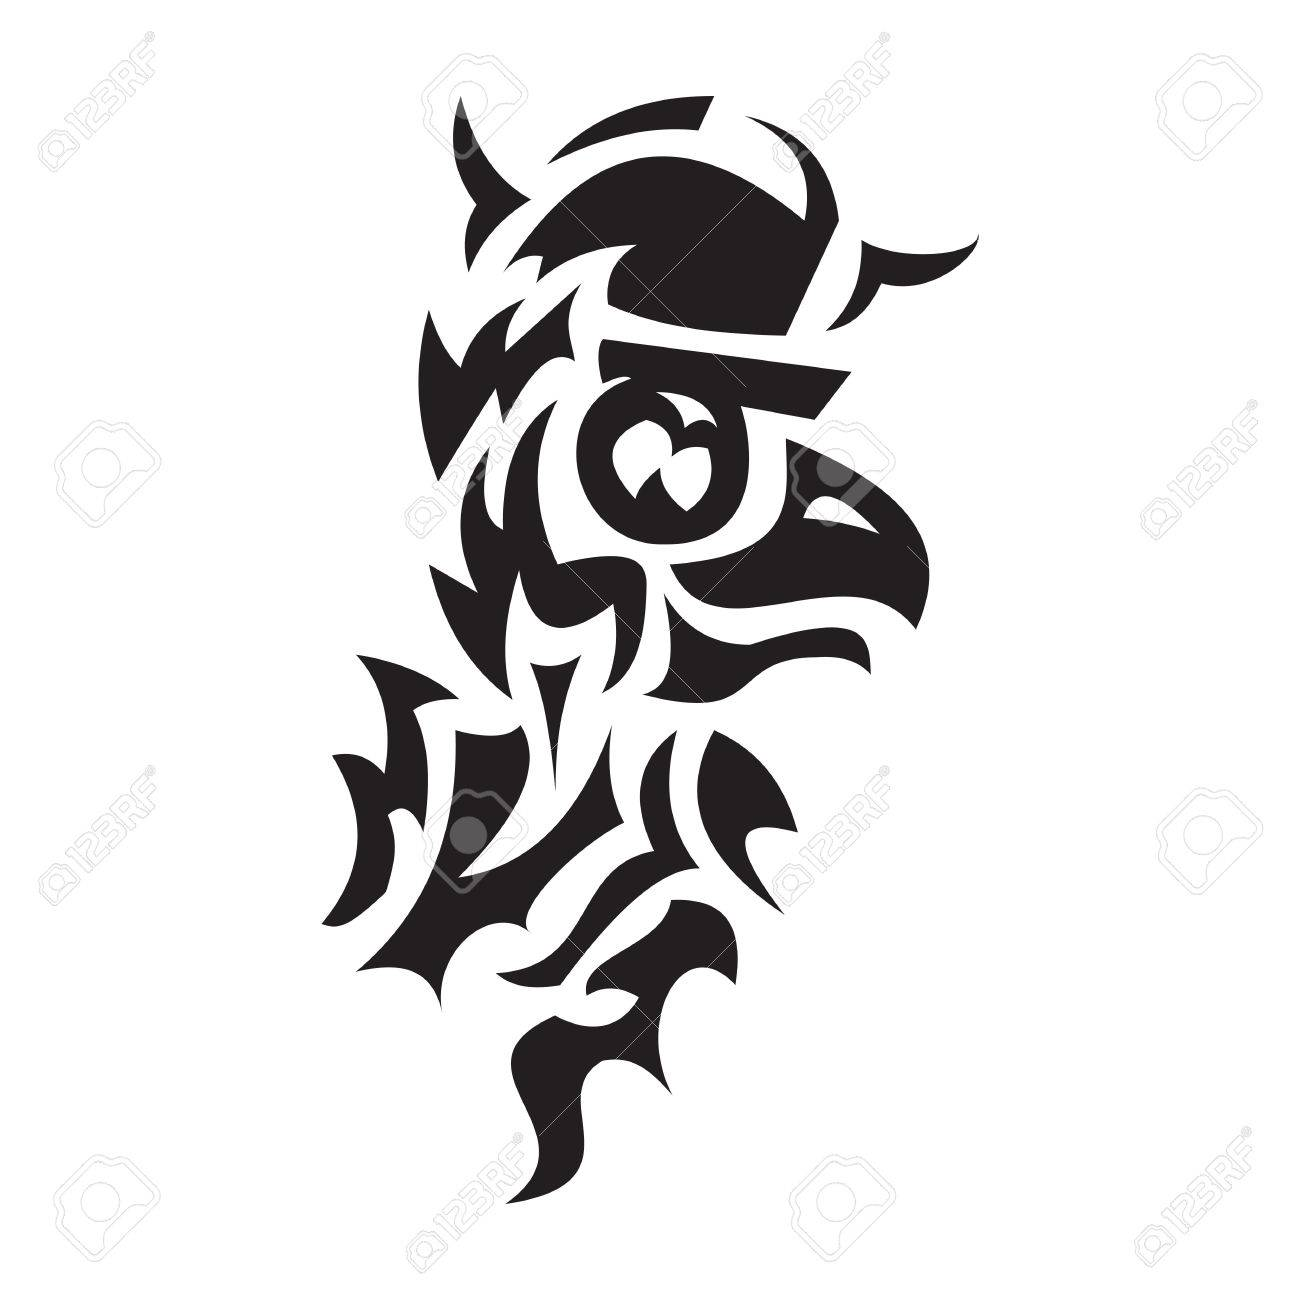 Tattoo of bird viking turned to the right royalty free cliparts tattoo of bird viking turned to the right stock vector 34918567 biocorpaavc